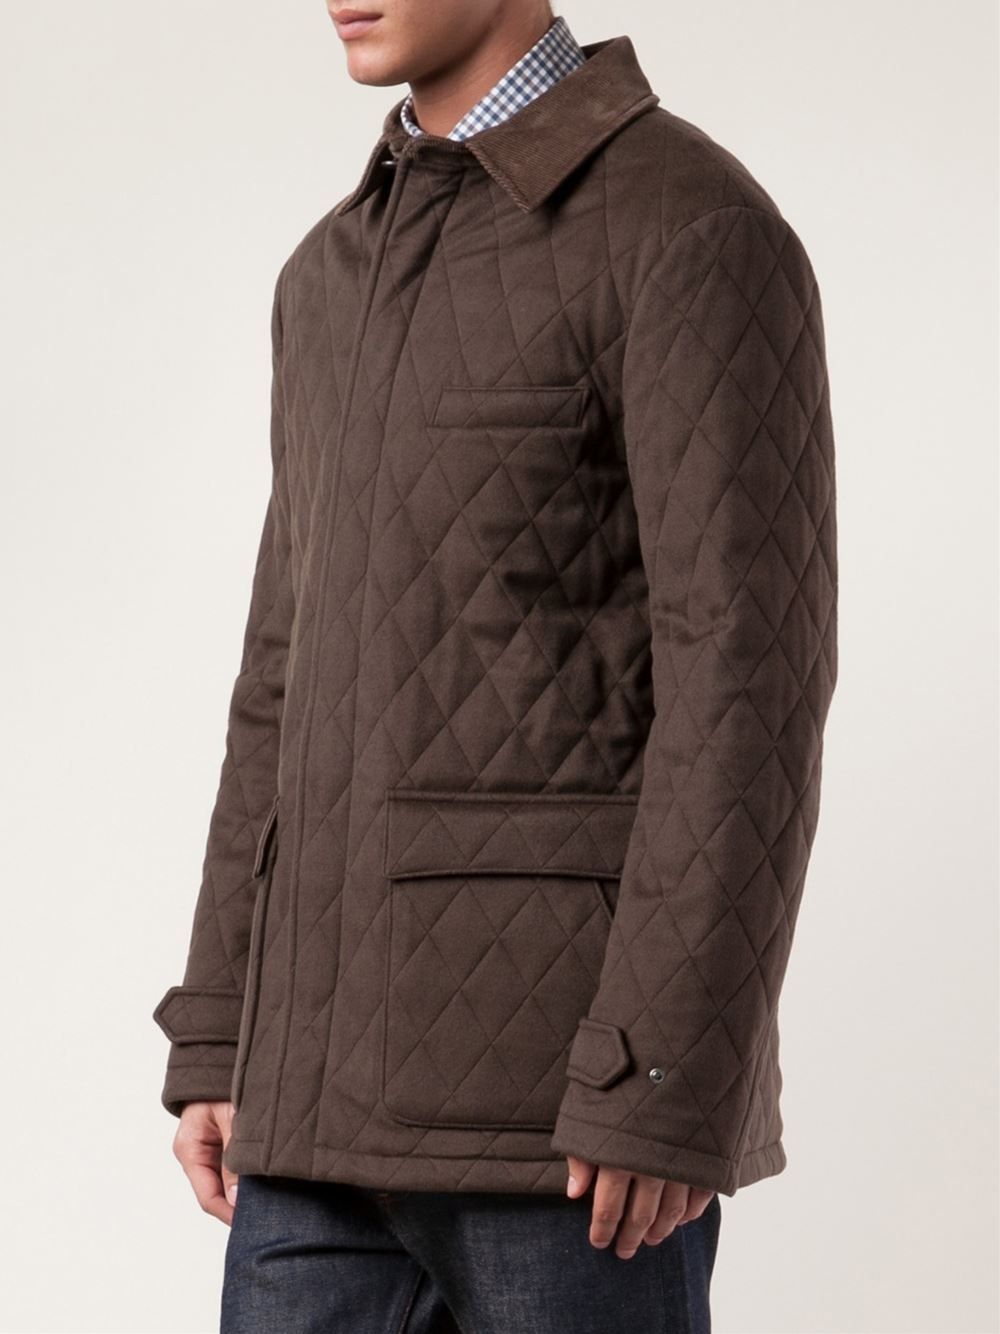 Loro piana Quilted Jacket in Brown for Men | Lyst